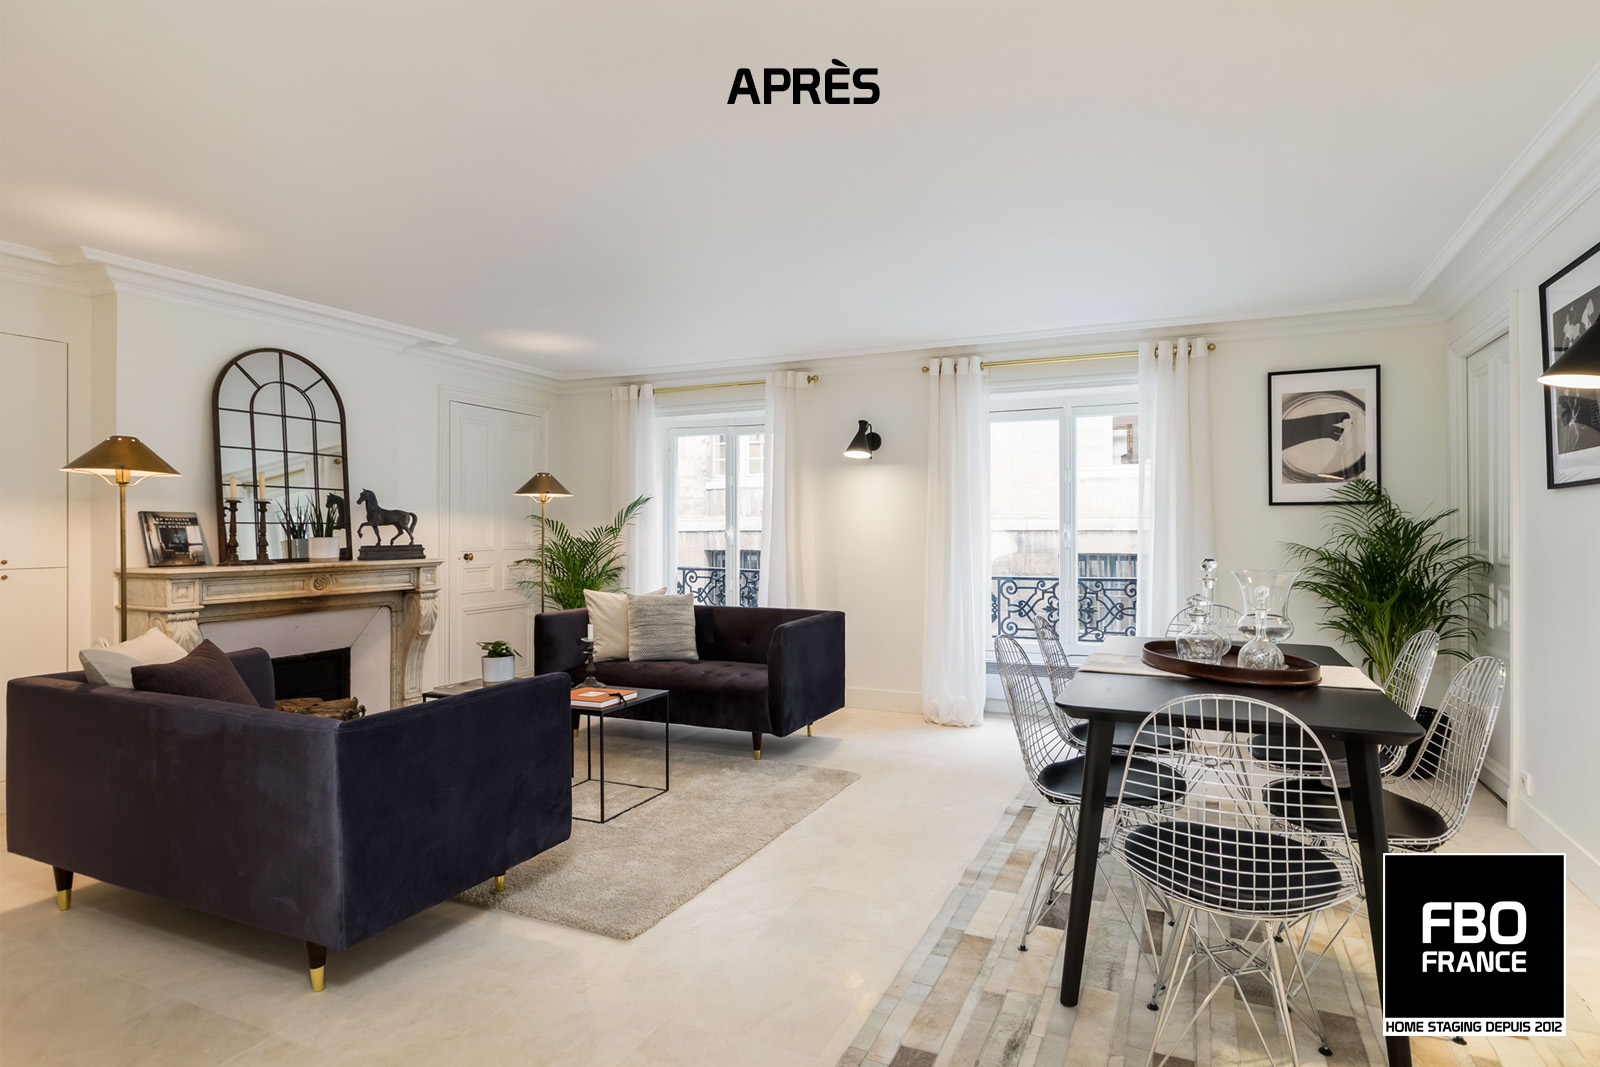 apres-home-staging-paris